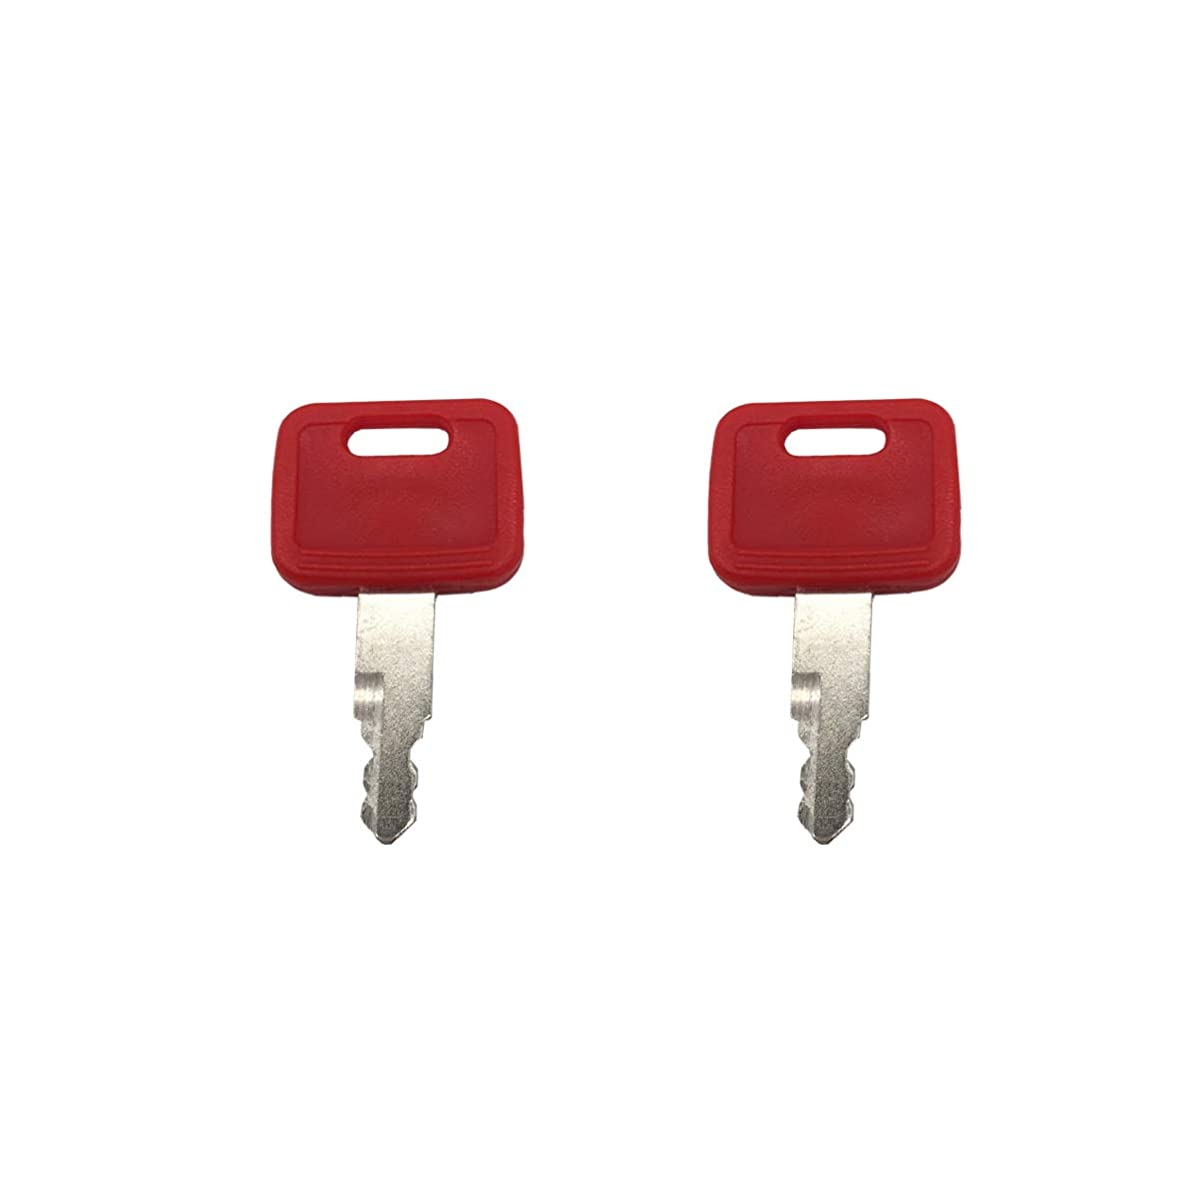 2 Pcs AT194969 AT147803 H800 Ignition Key fits Excavator John Deere Excavator Case Hitachi New Holland